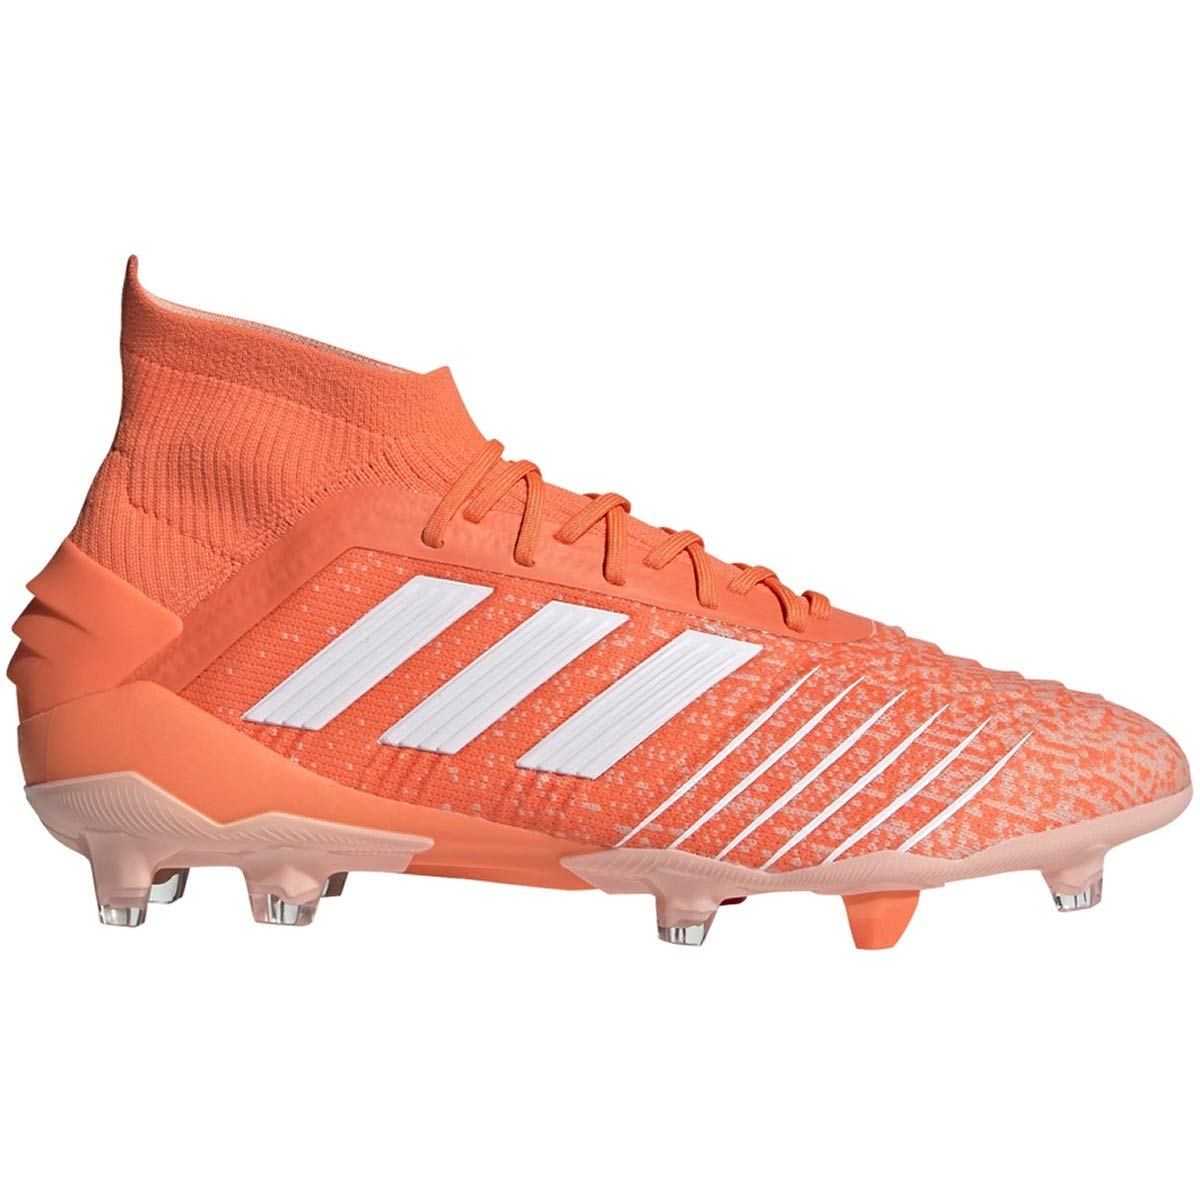 adidas Predator 19.1 FG Cleat - Unisex Soccer Hi/Res Coral/White/Pink by adidas